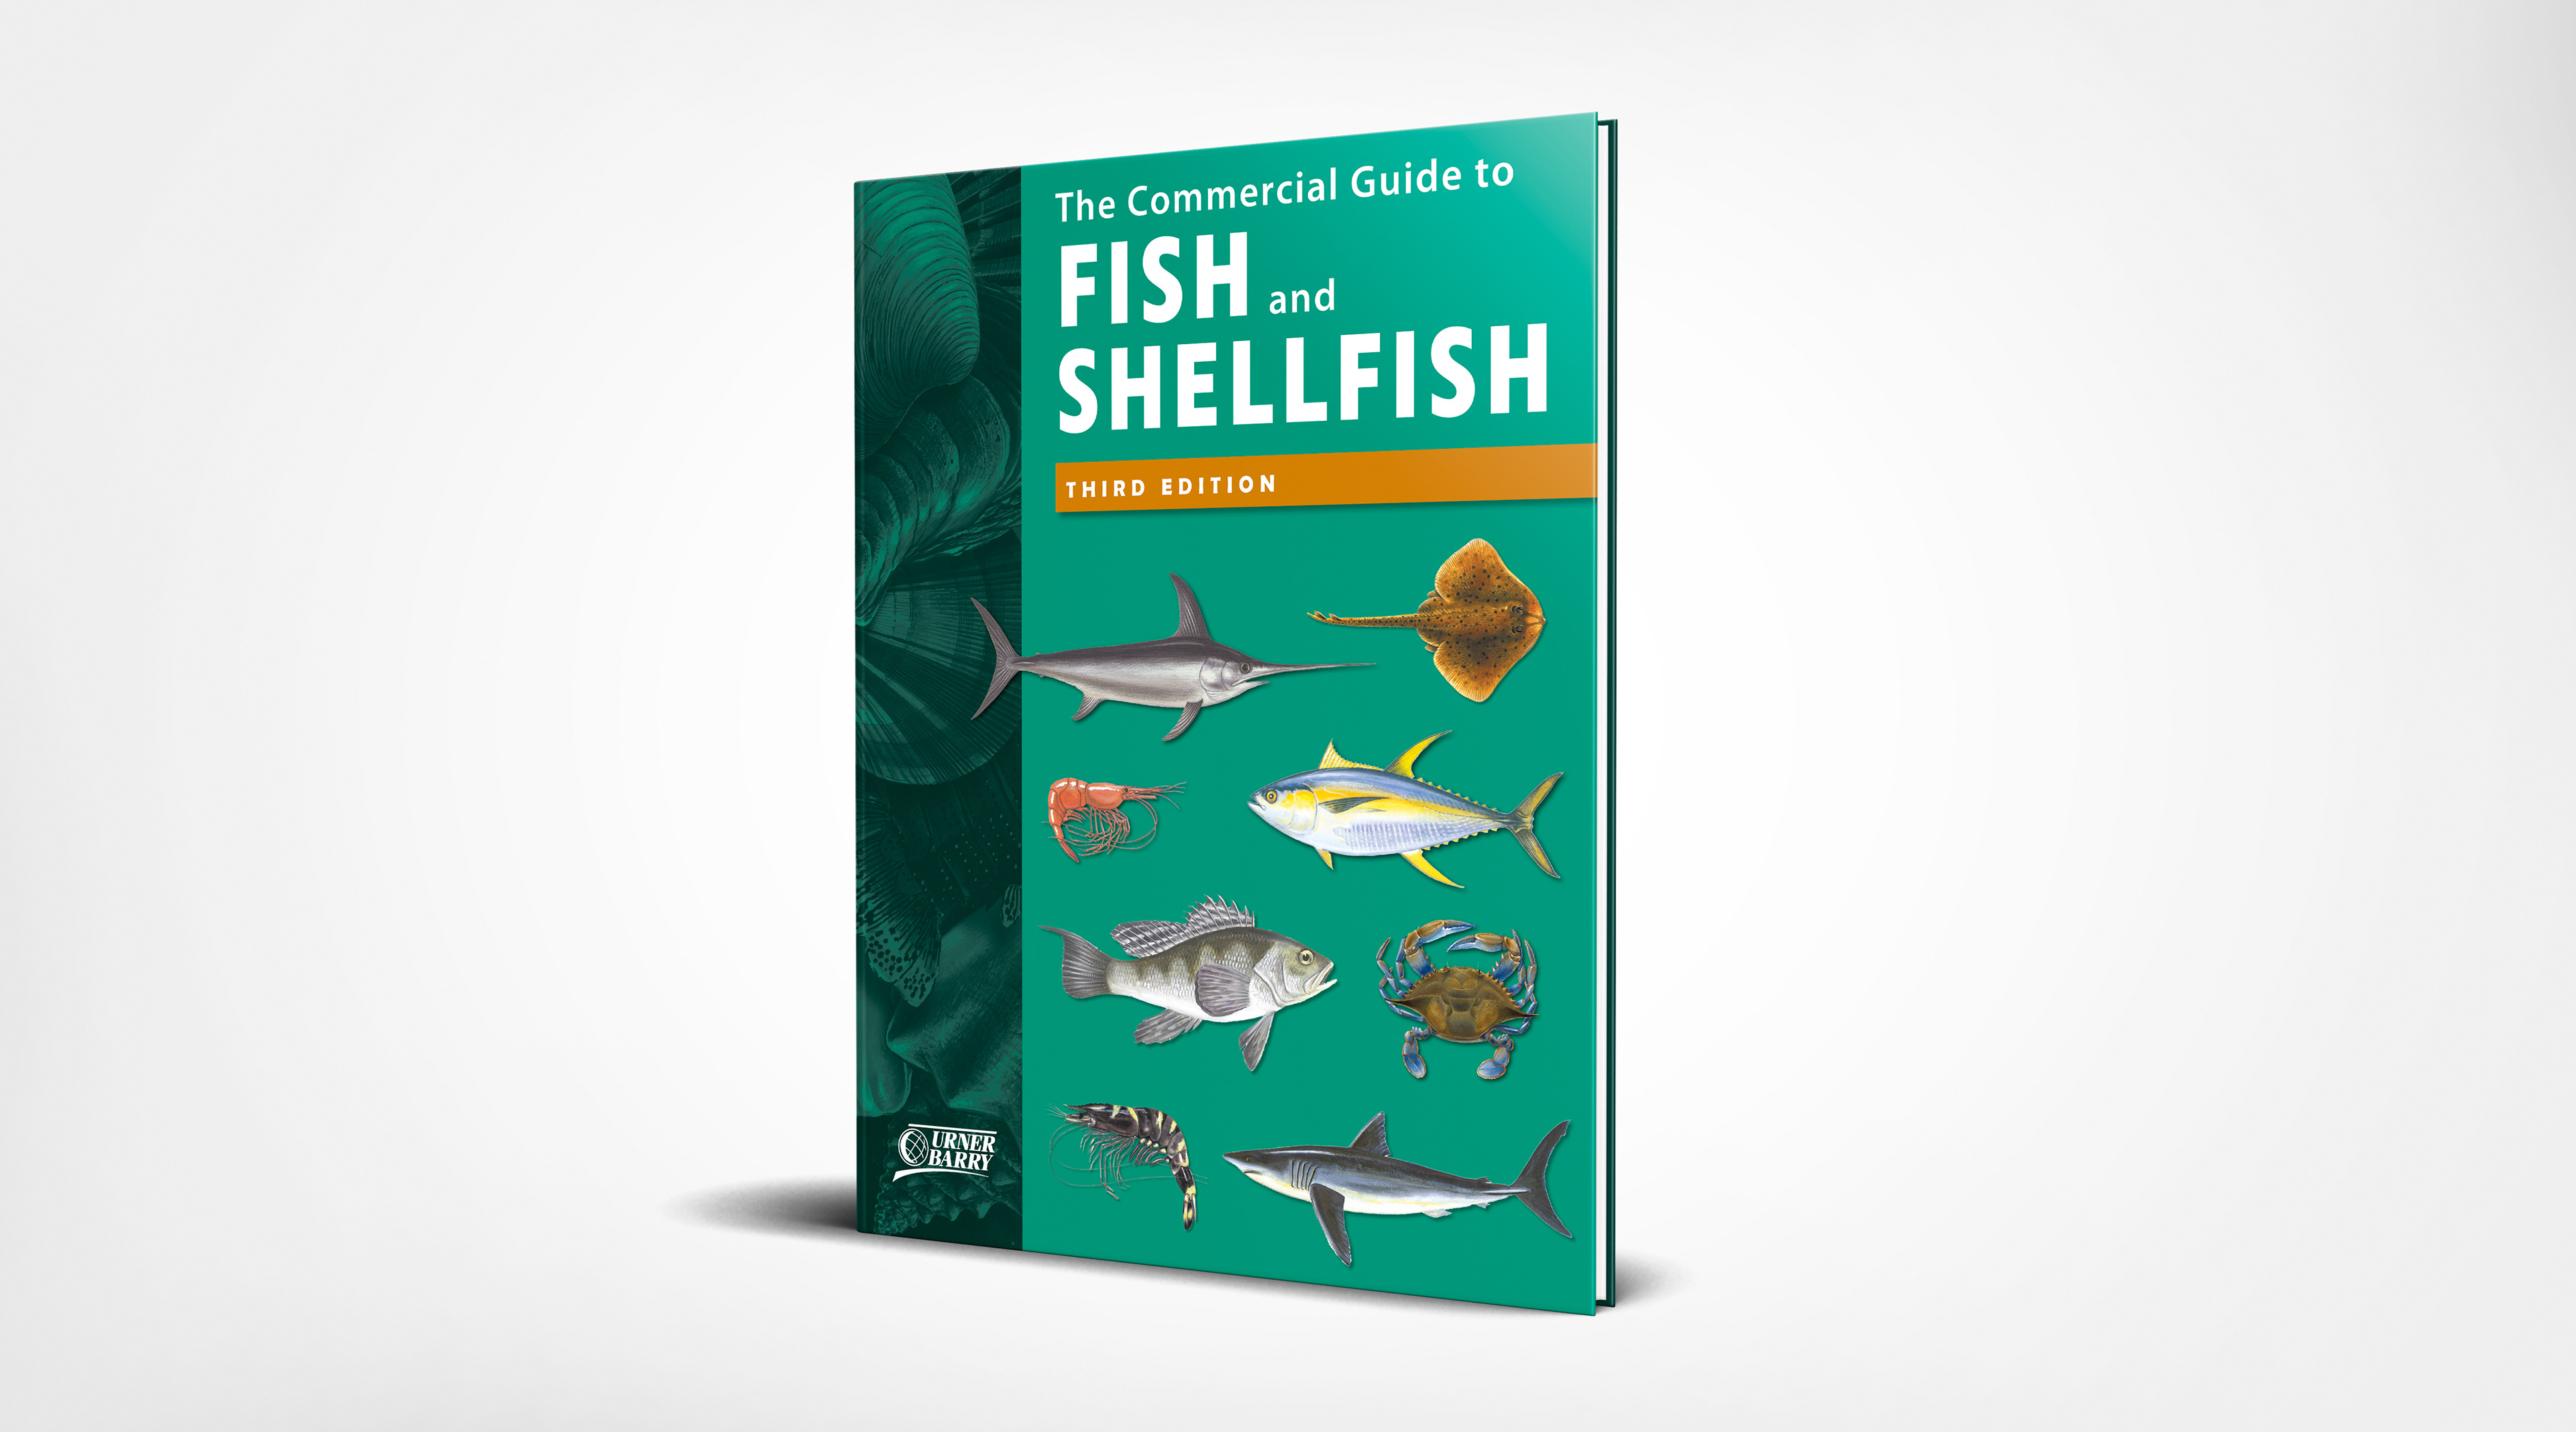 Shannon ehrola the commercial guide to fish and shellfish i was also responsible for illustrating new information that was not available within previous editions such as seasonality of a species and cleaning up sciox Gallery